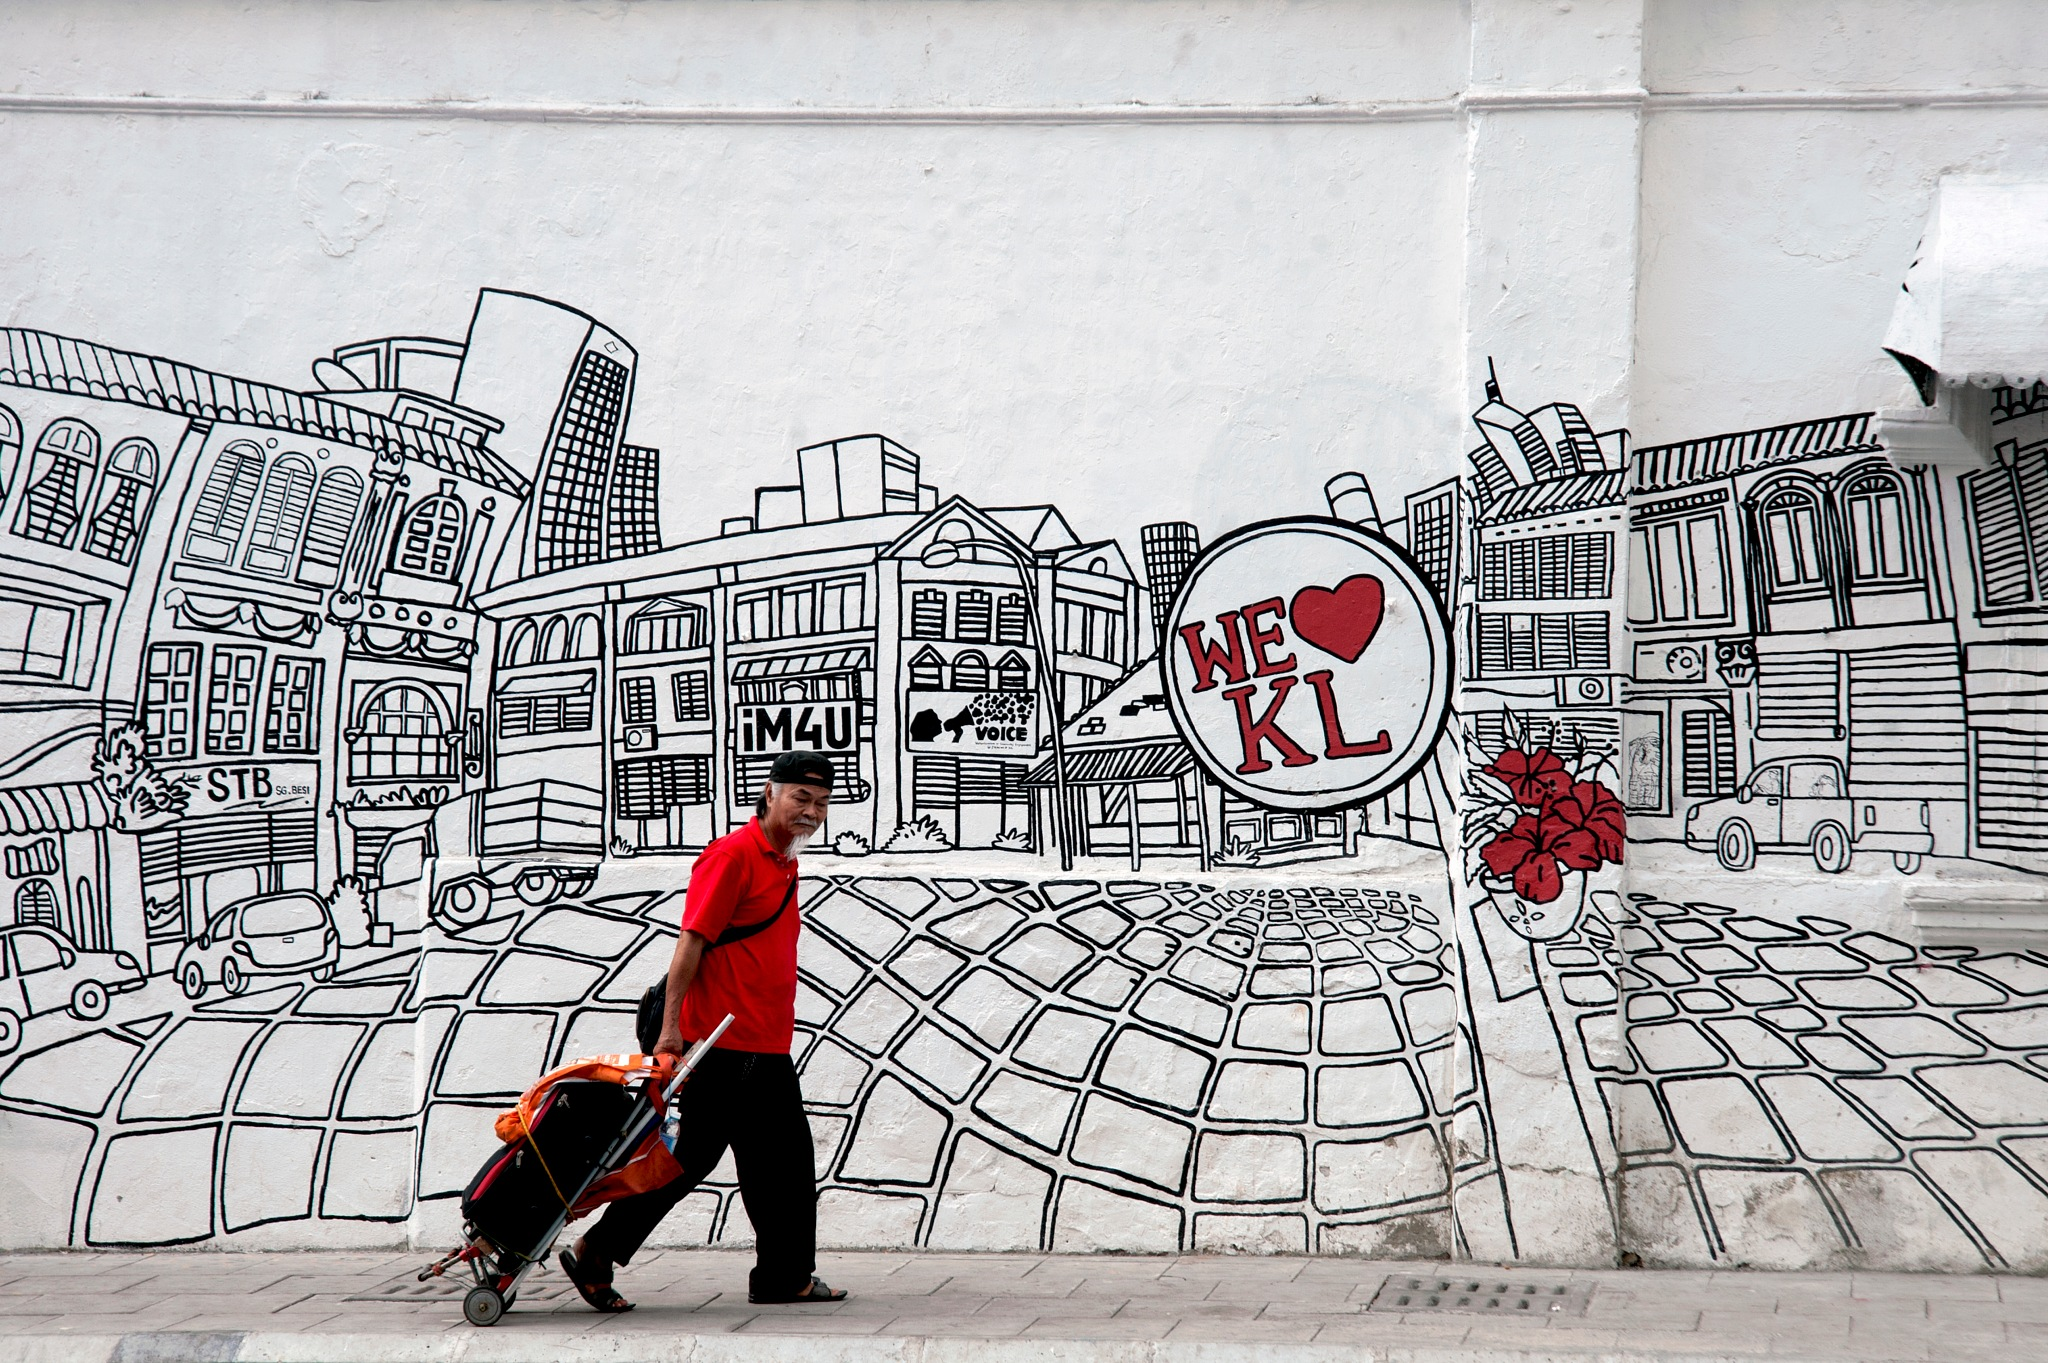 we love KL by Mustaffa Tapa Otai